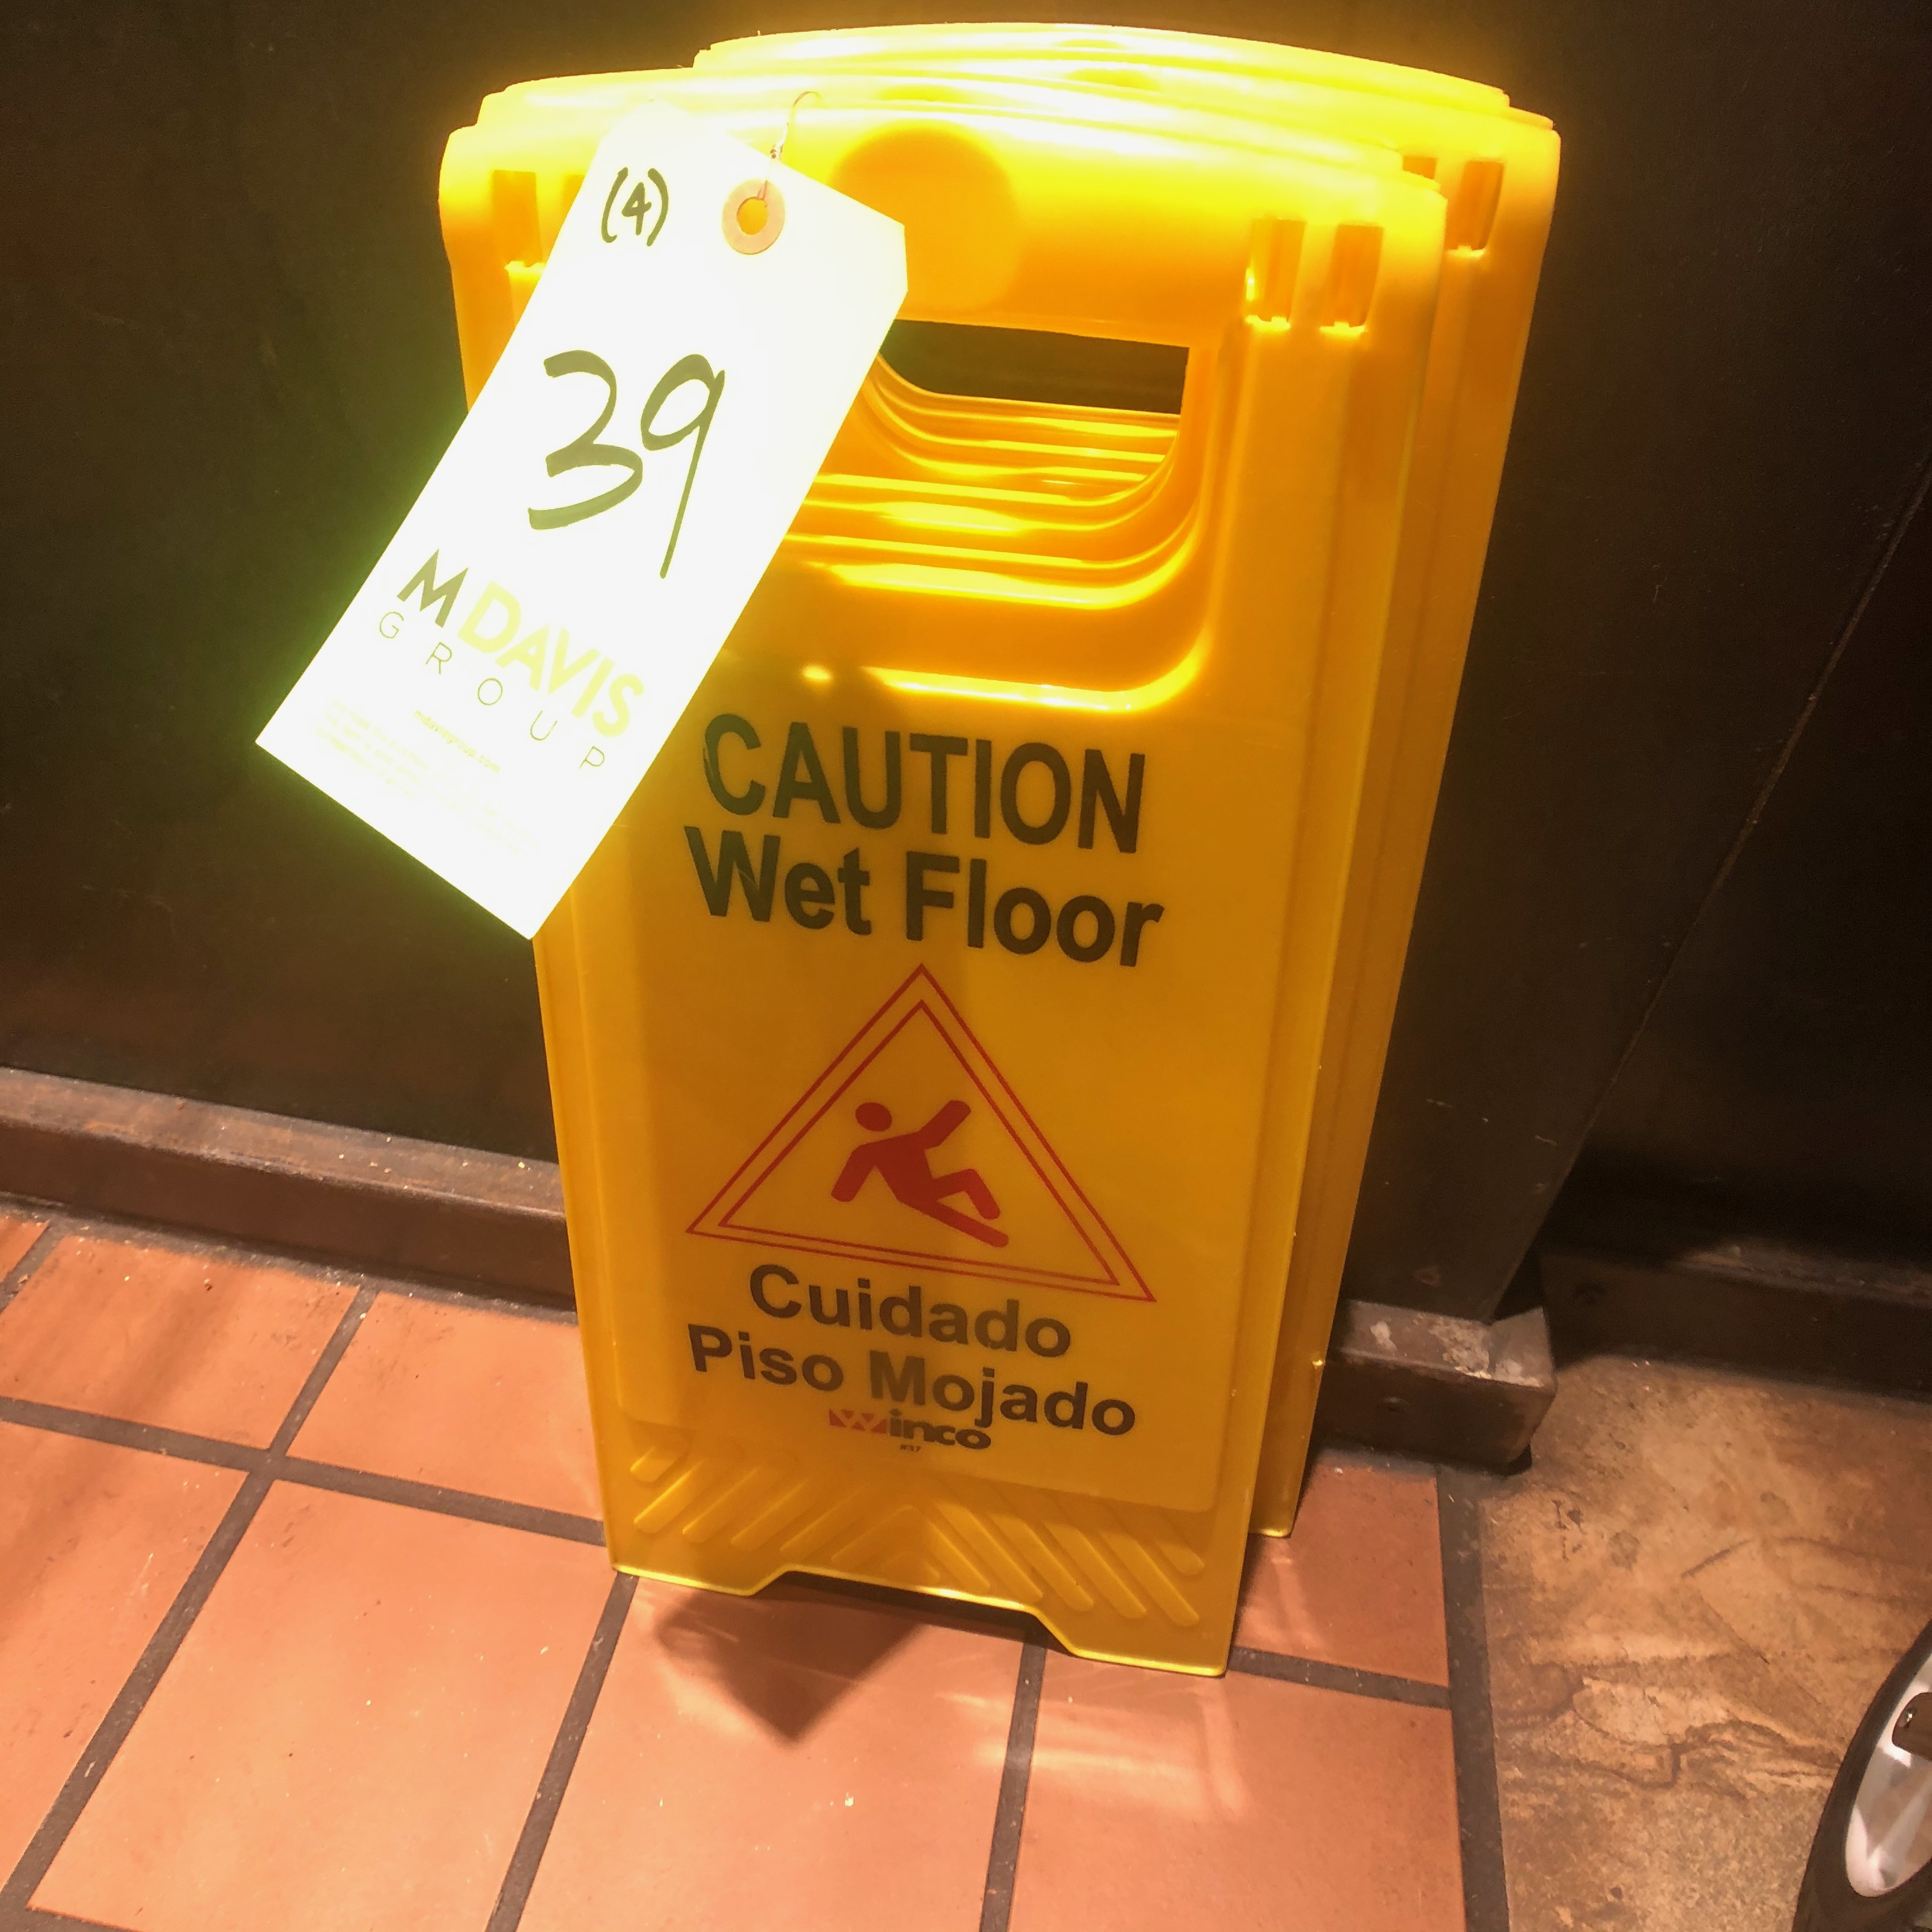 (4) Winco Yellow Caution Wet Floor Signs - Image 2 of 3